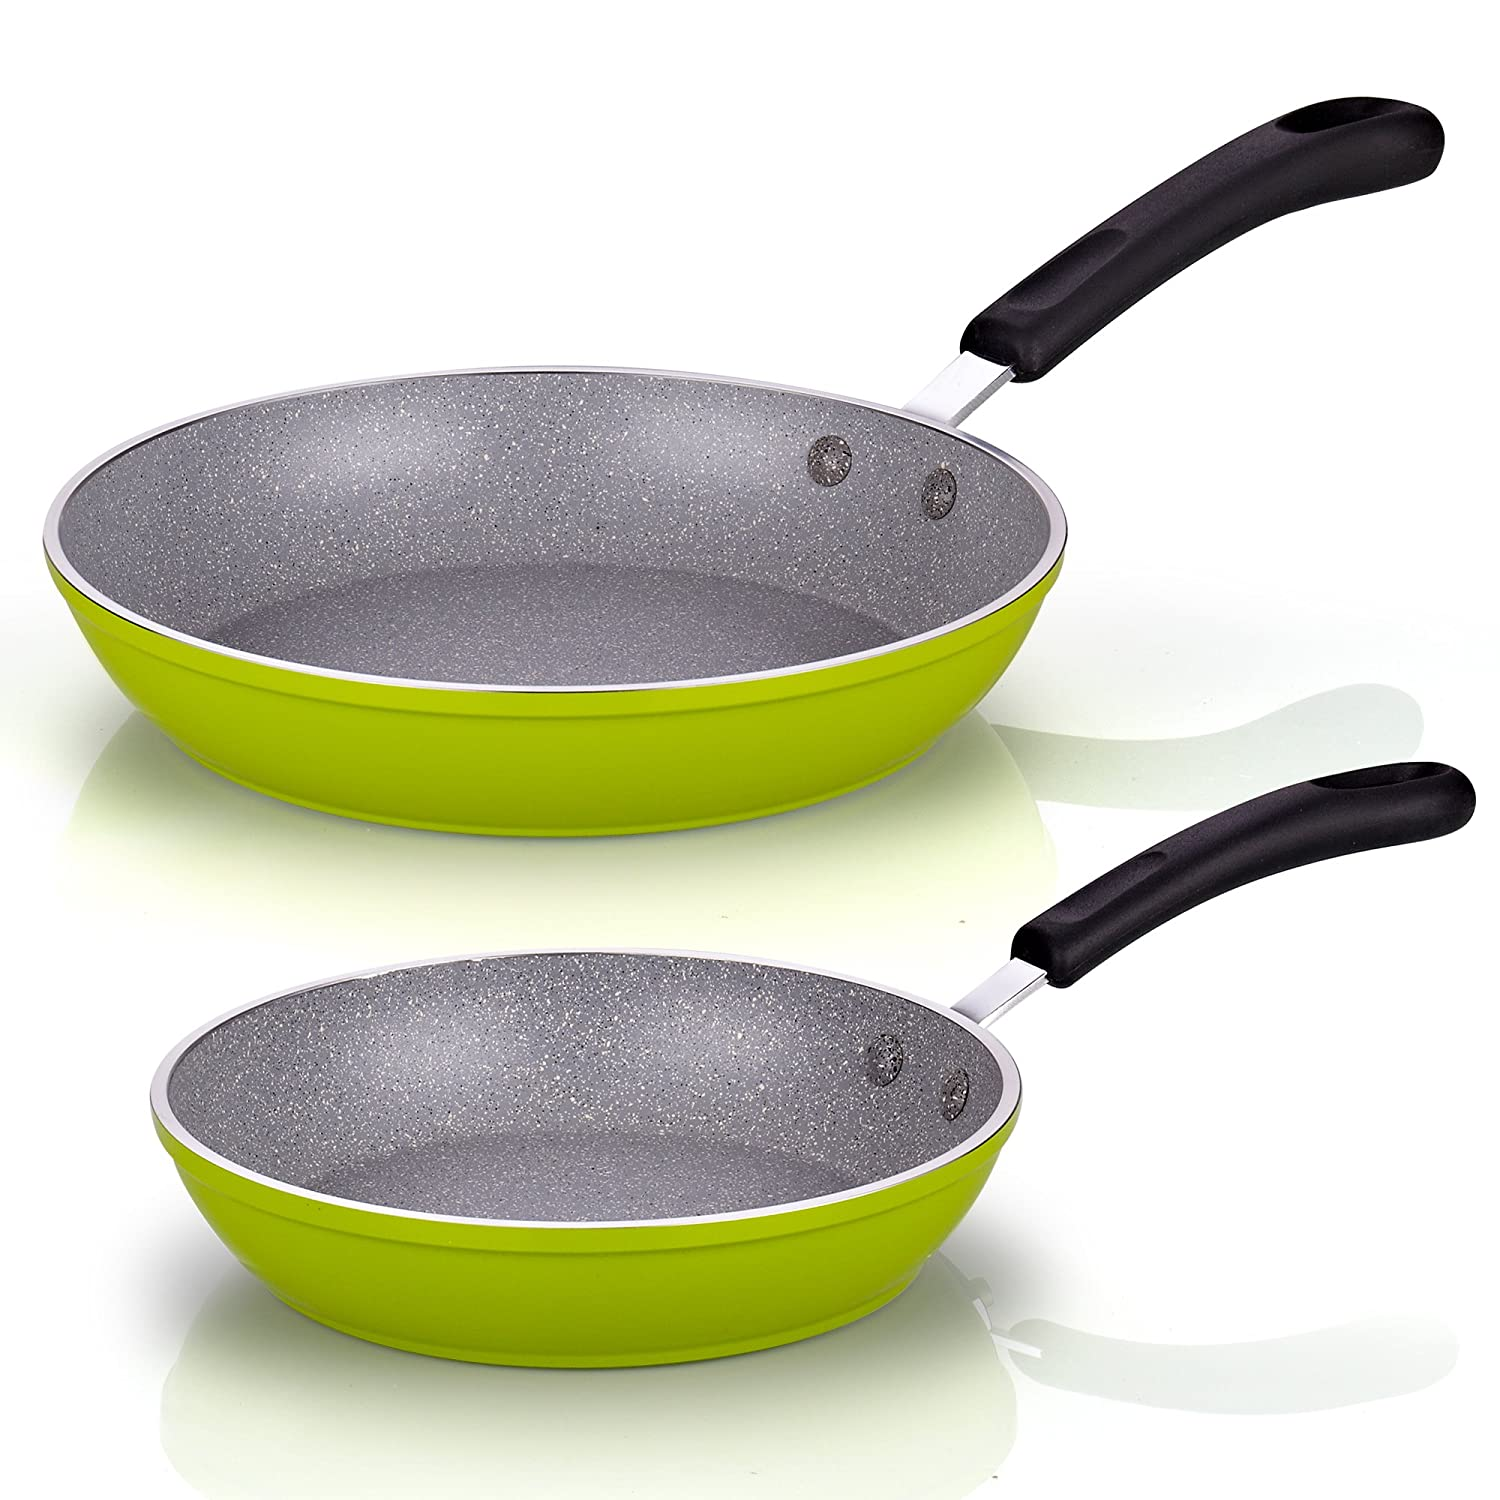 Cook N Home 8 and 10-Inch Nonstick Heavy Gauge Fry Pan Saute Skillet Set, Green